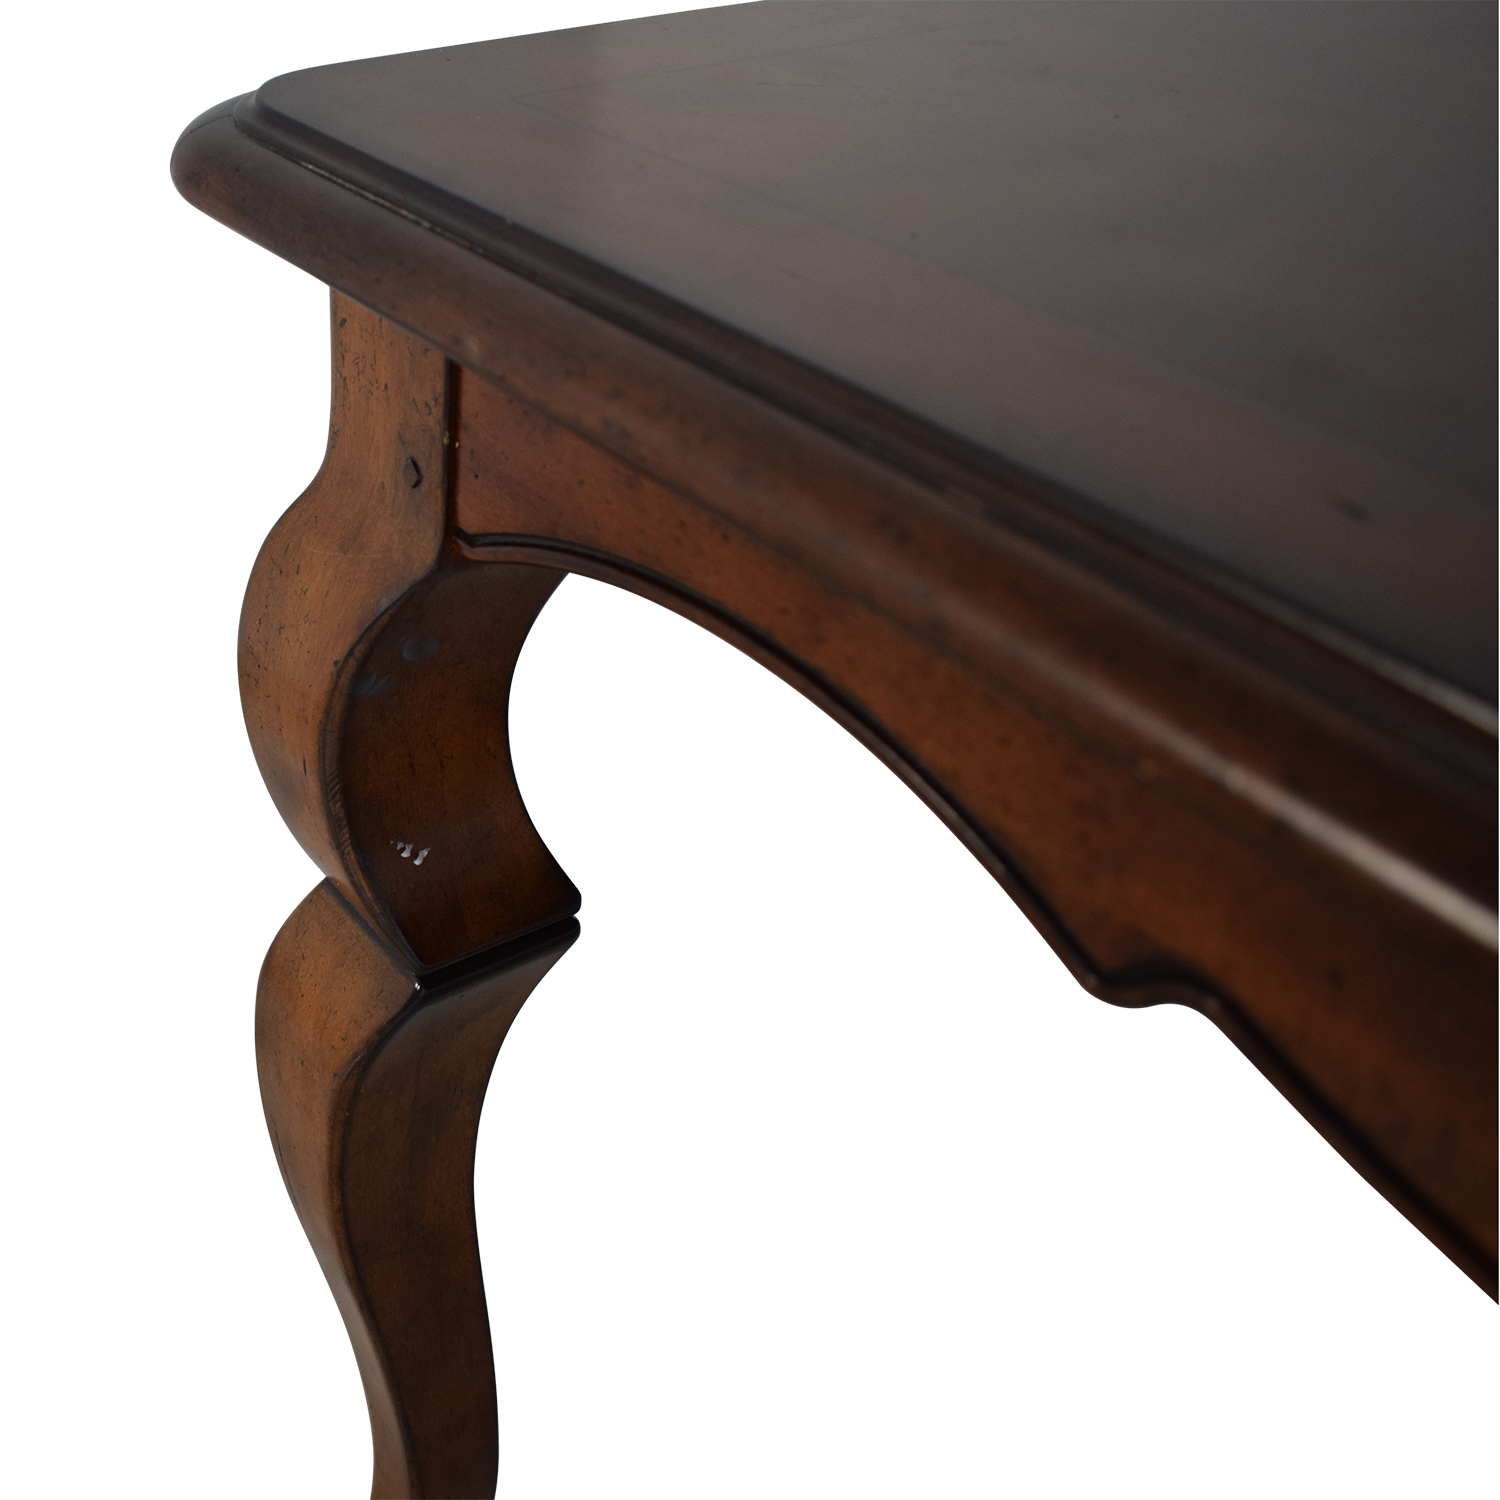 Drexel Heritage Drexel Heritage Extendable Dining Table Brown